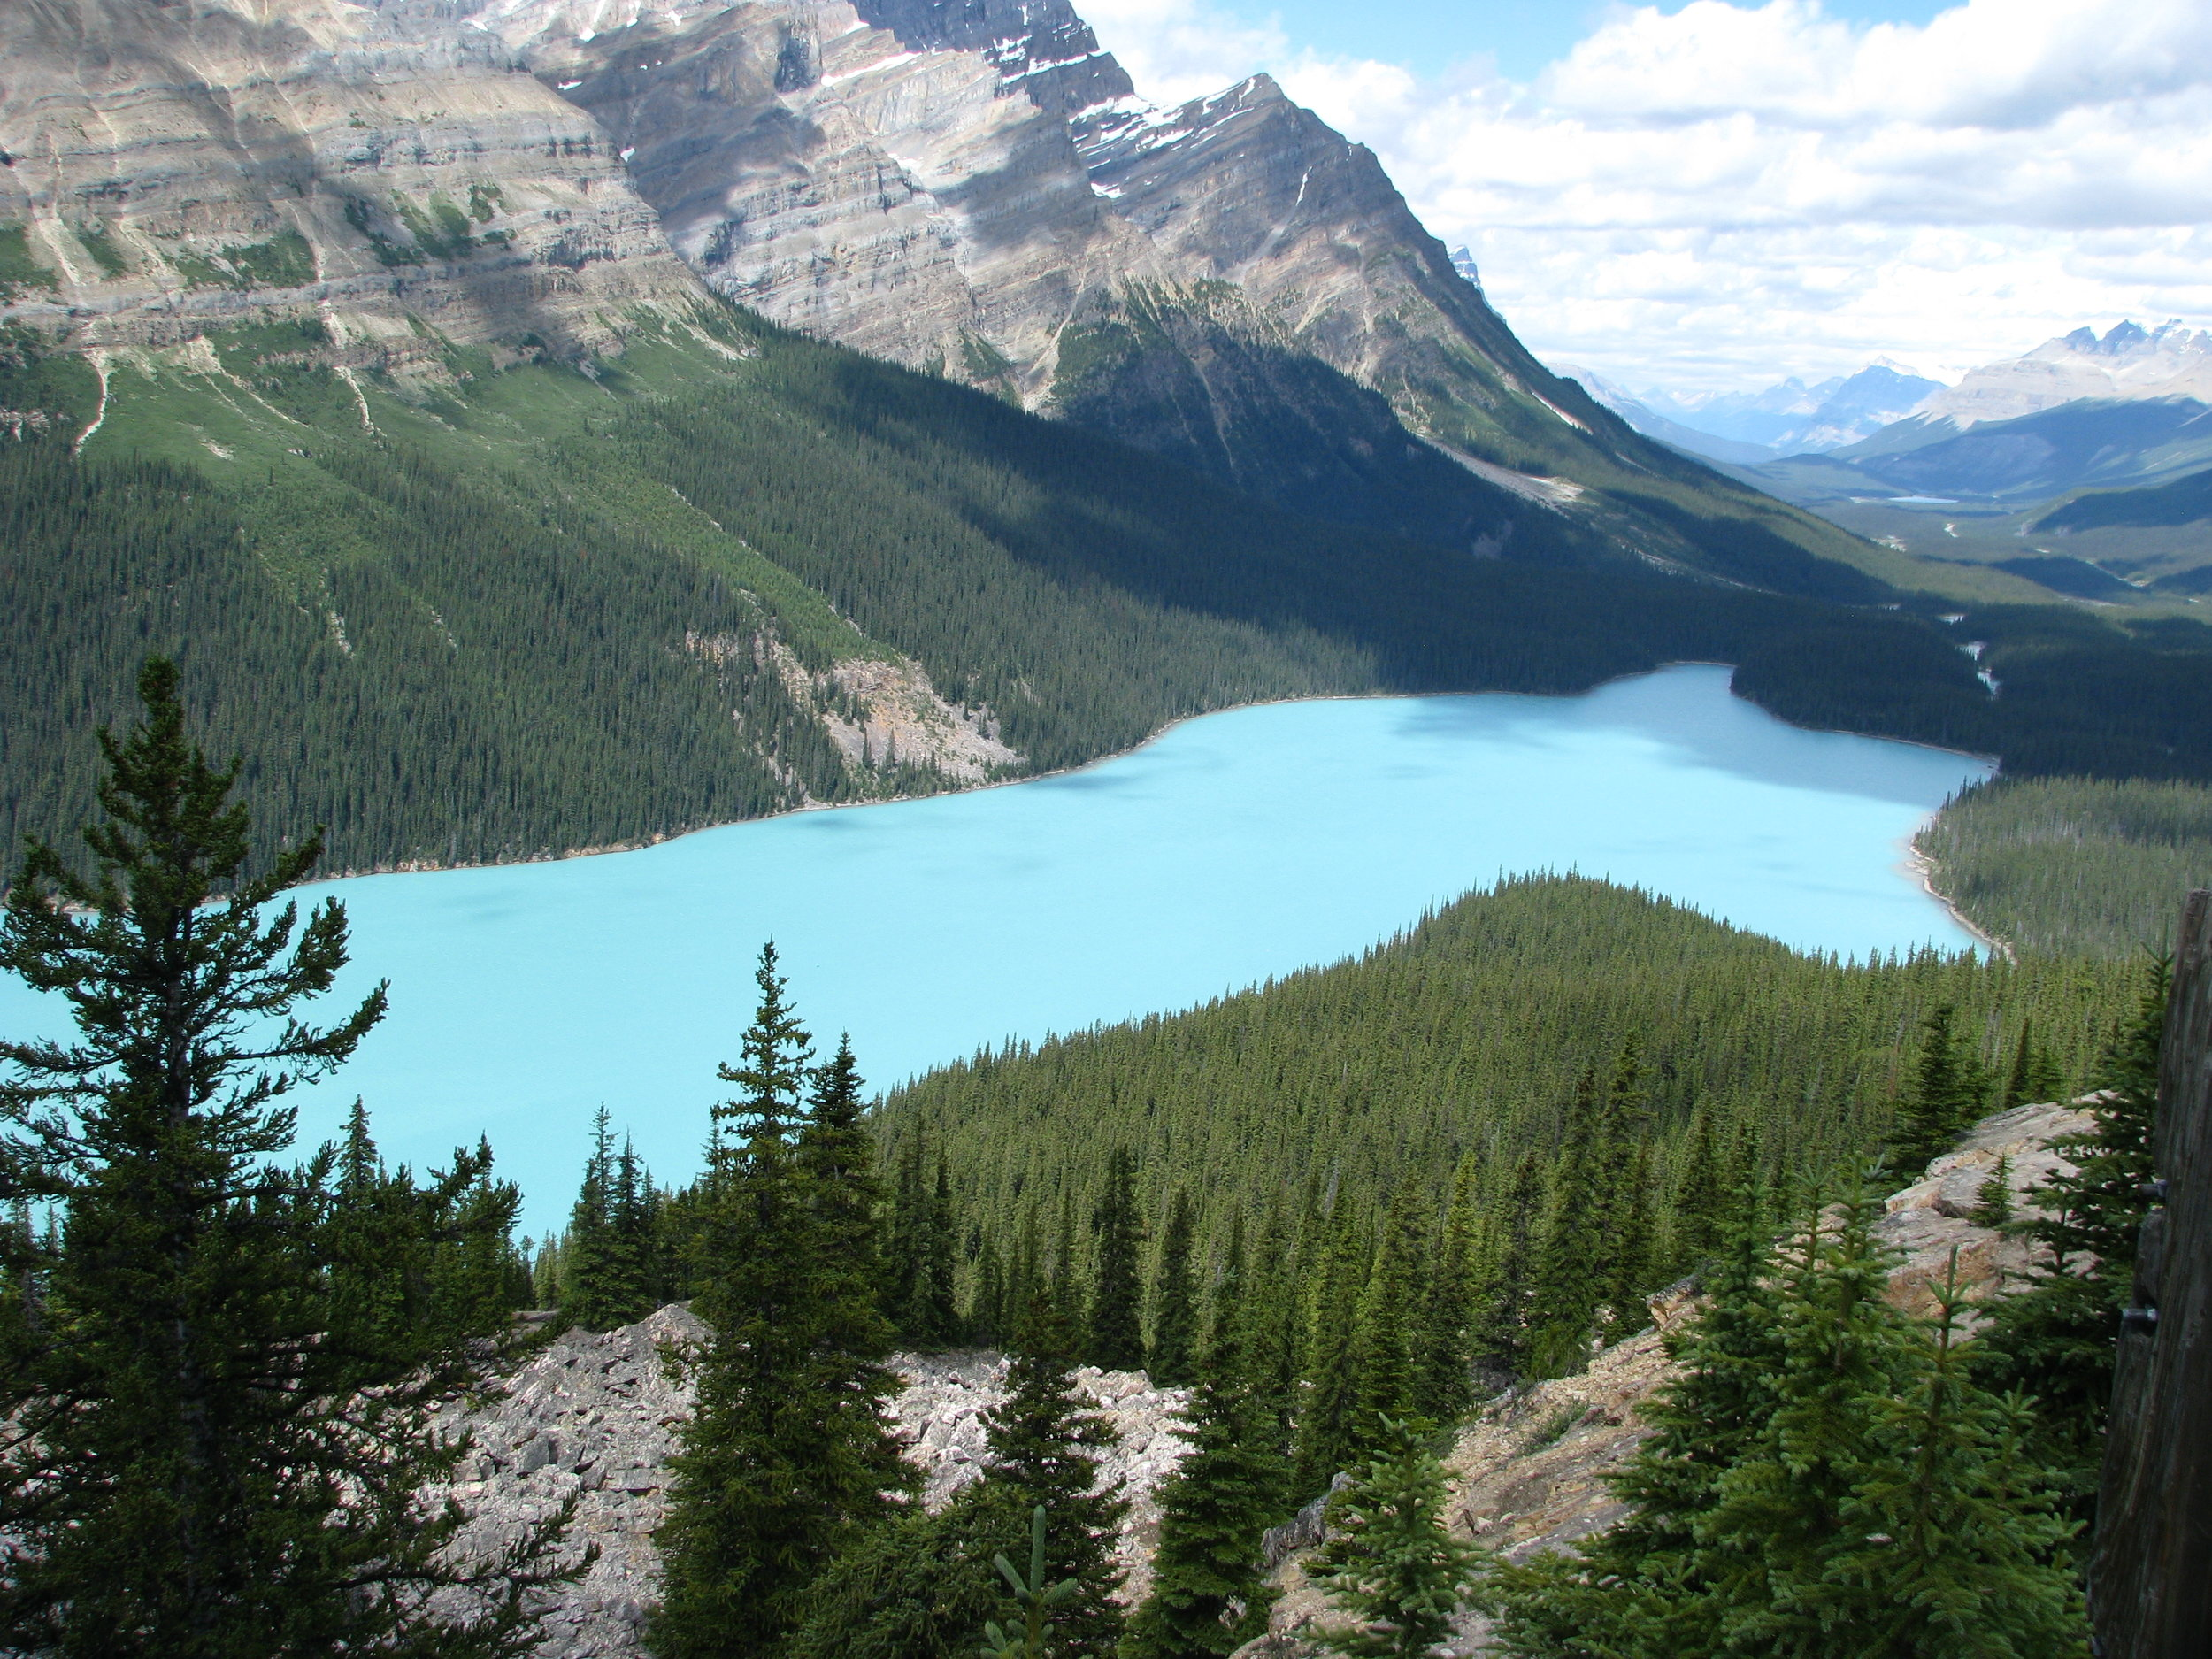 Experience Jasper National Park - Places visited: Jasper National Park, Icefield Parkway, Bow Lake, Columbia Icefield, Peyto Lake + Optional Glacier Explorer and SkywalkTour duration: From 7:30 am to 8:30 pm